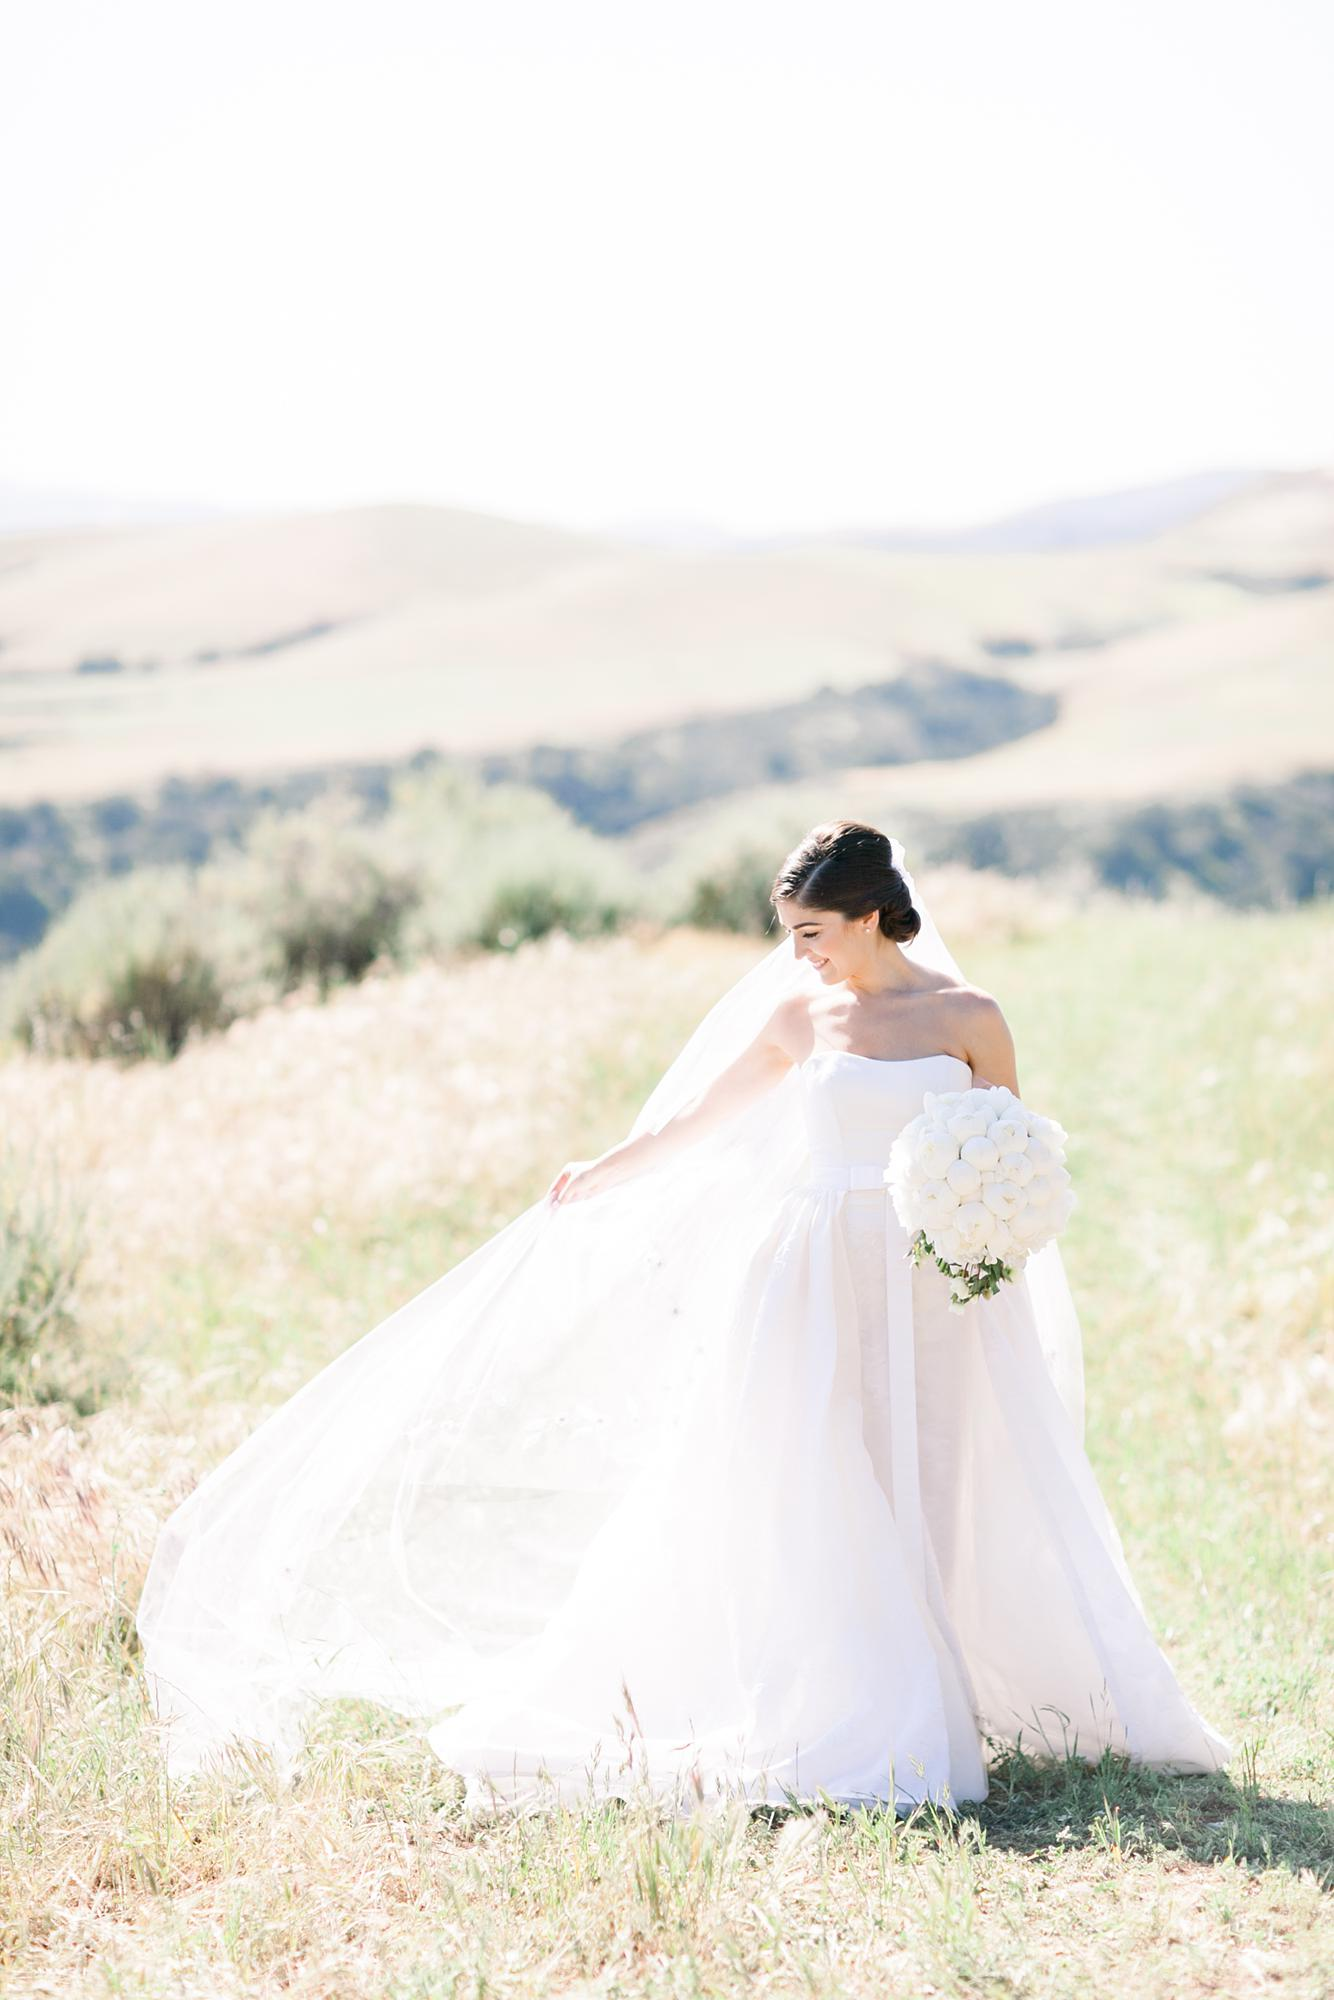 Santa Ynez Vineyard Private Estate Wedding | Miki & Sonja Photography | www.mikiandsonja.com